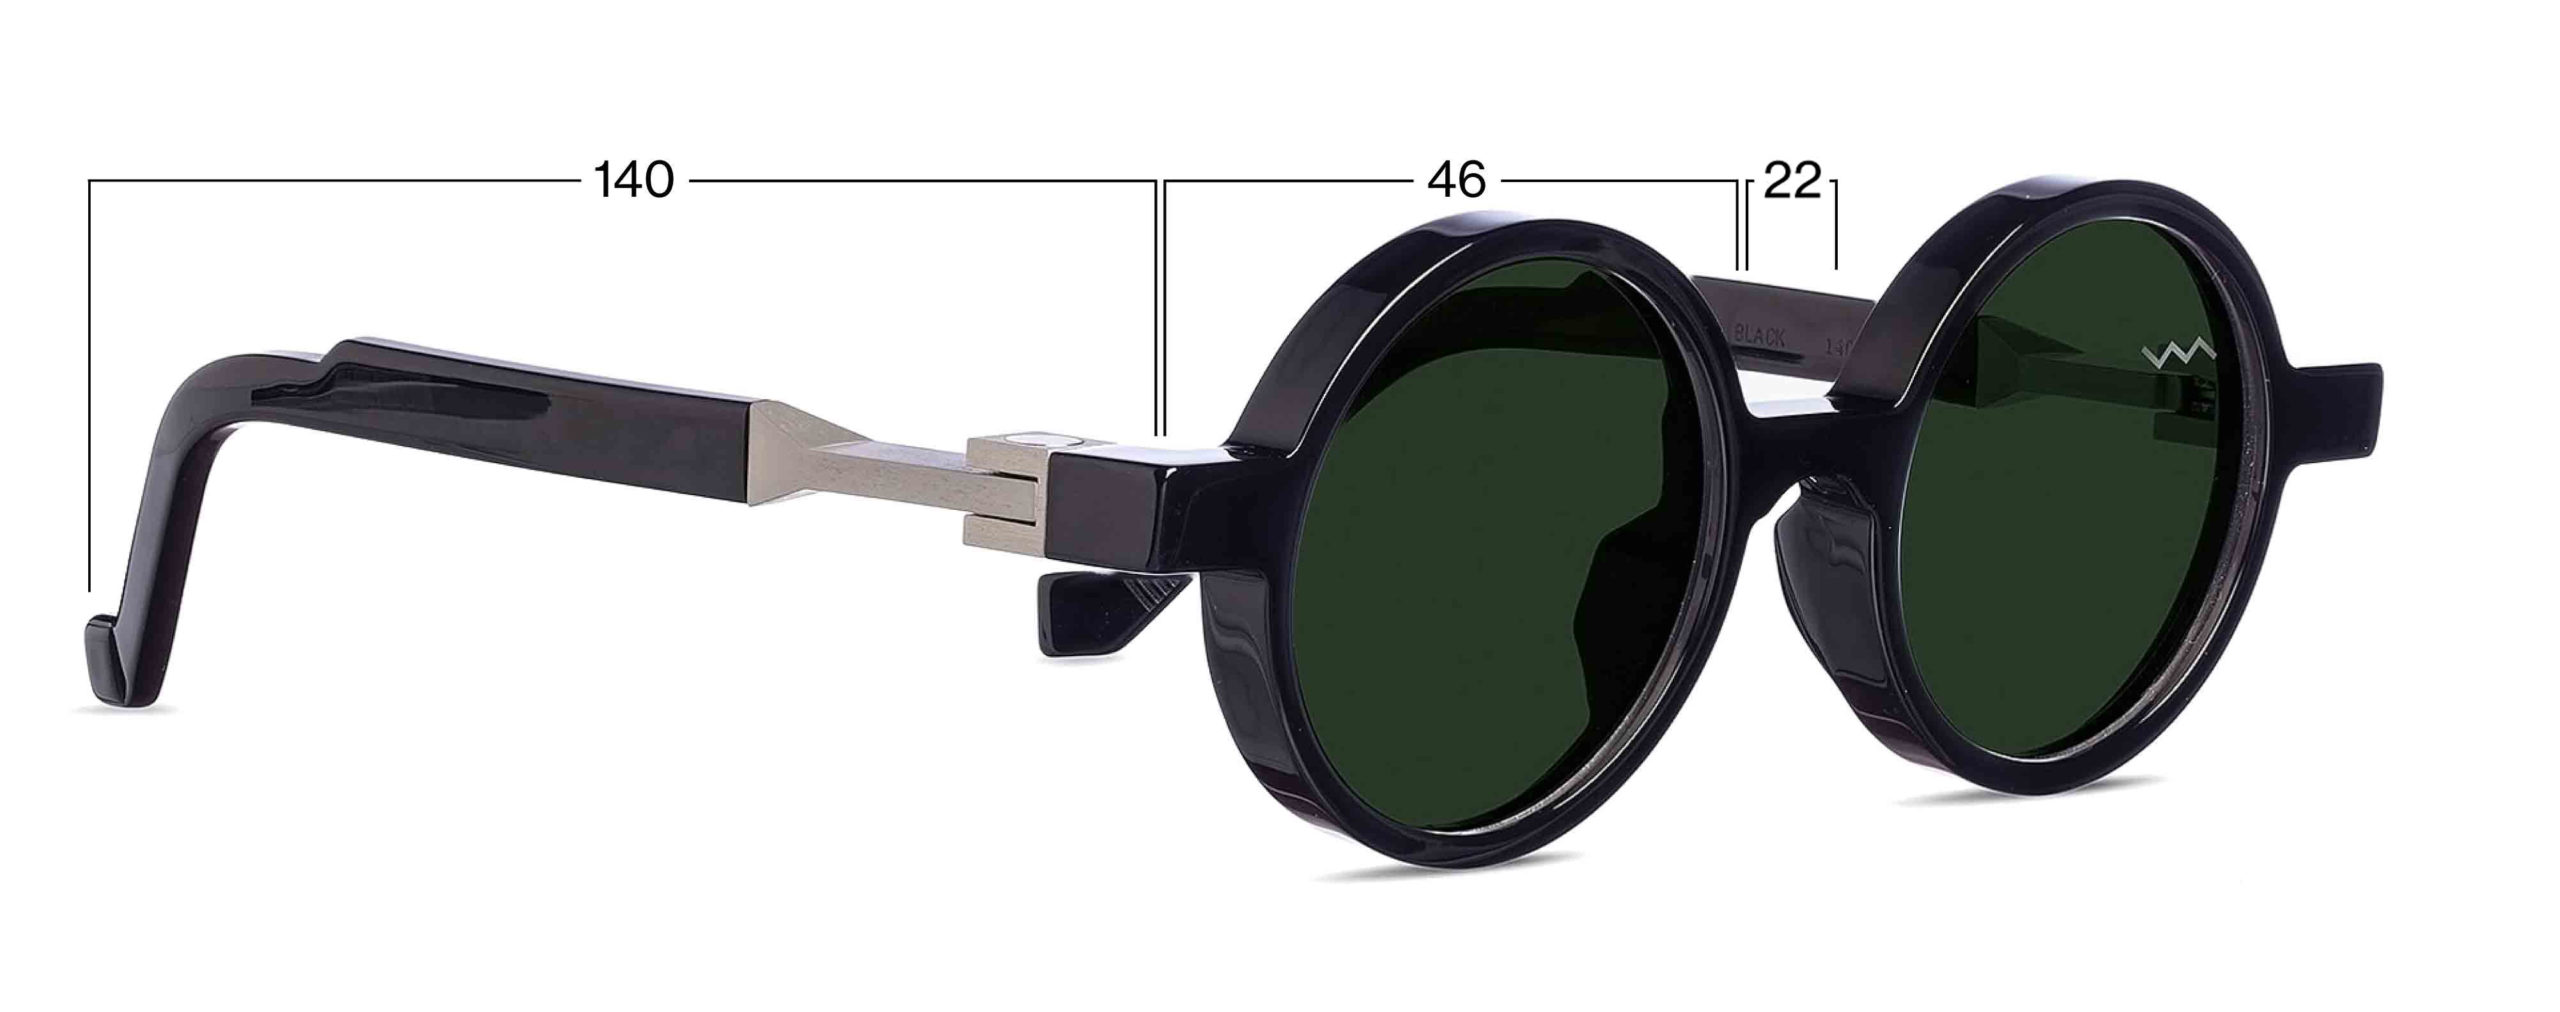 vava eyewear online shop wl00006 black SIZING